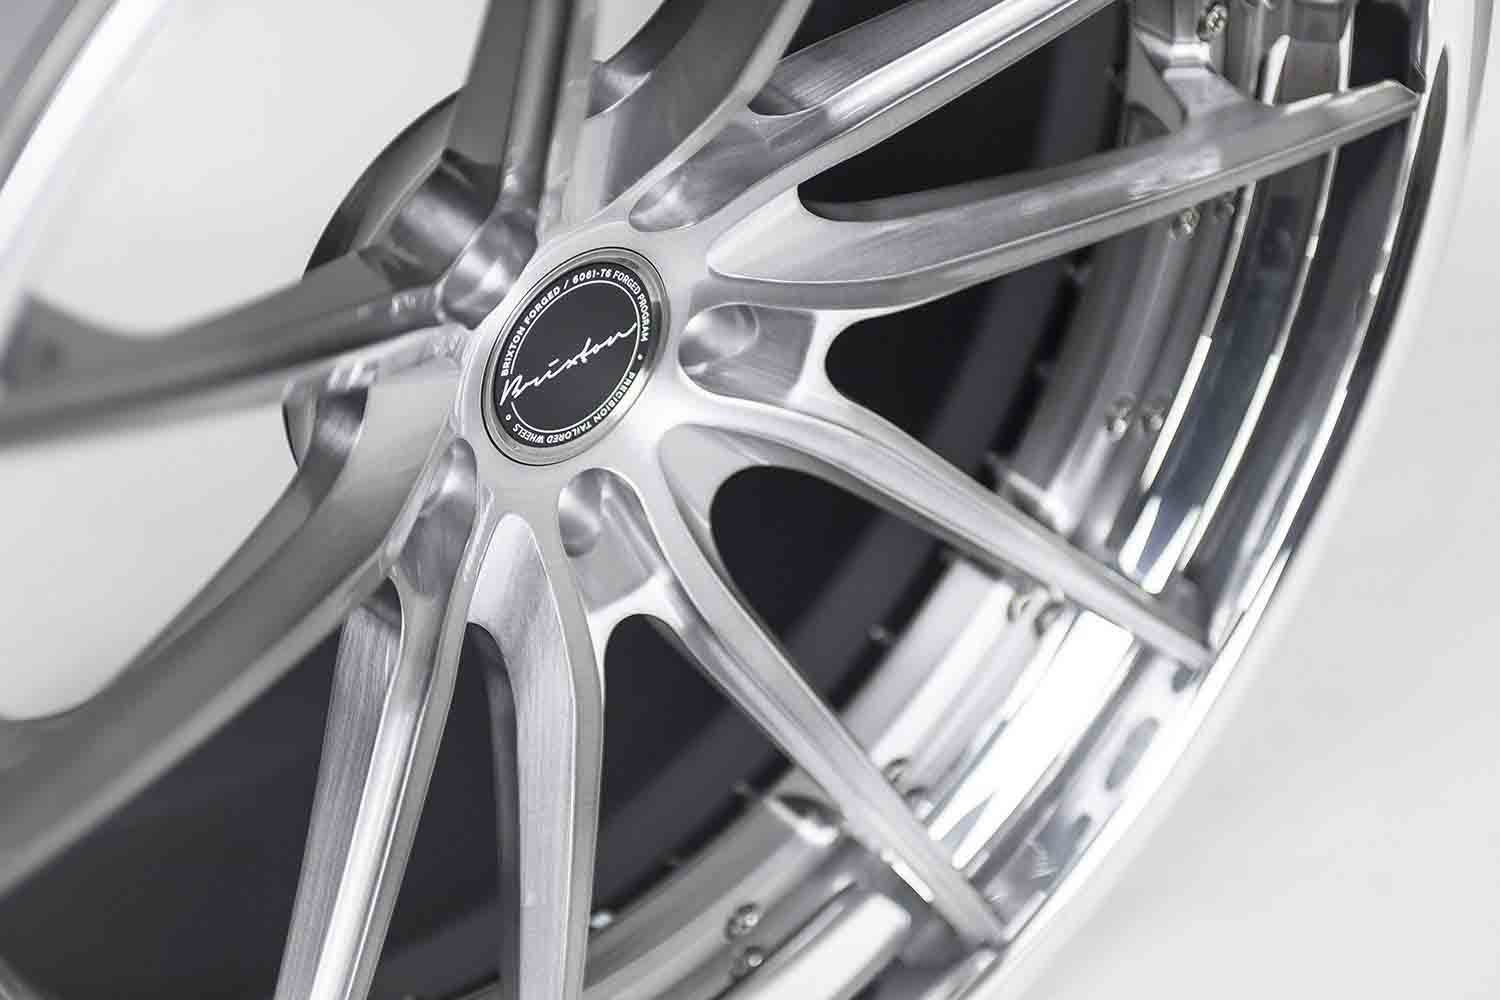 images-products-1-2249-232974537-brixton-forged-m53-single-tint-brushed.jpg